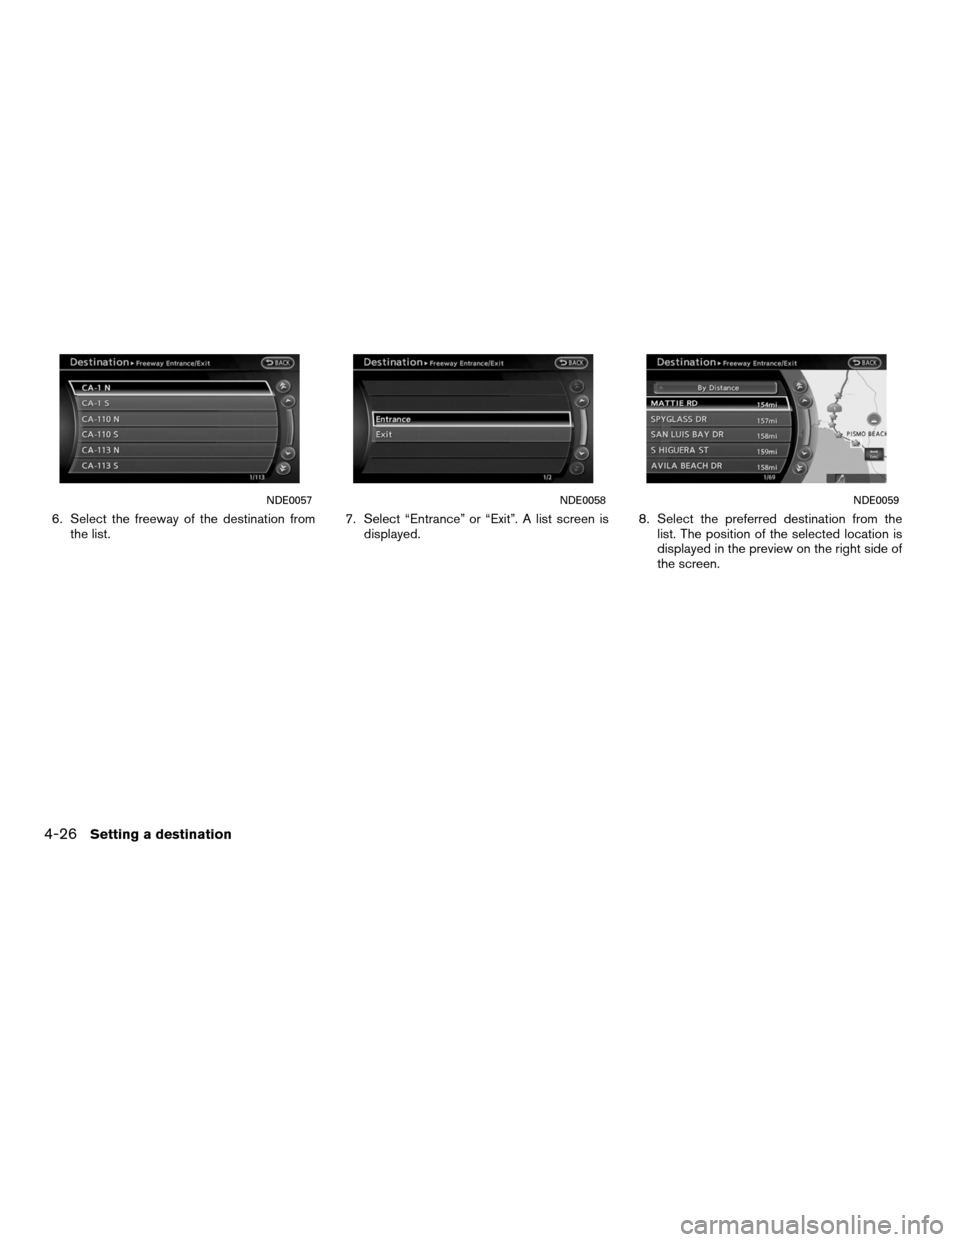 NISSAN ALTIMA HYBRID 2011 L32A / 4.G Navigation Manual, Page 100